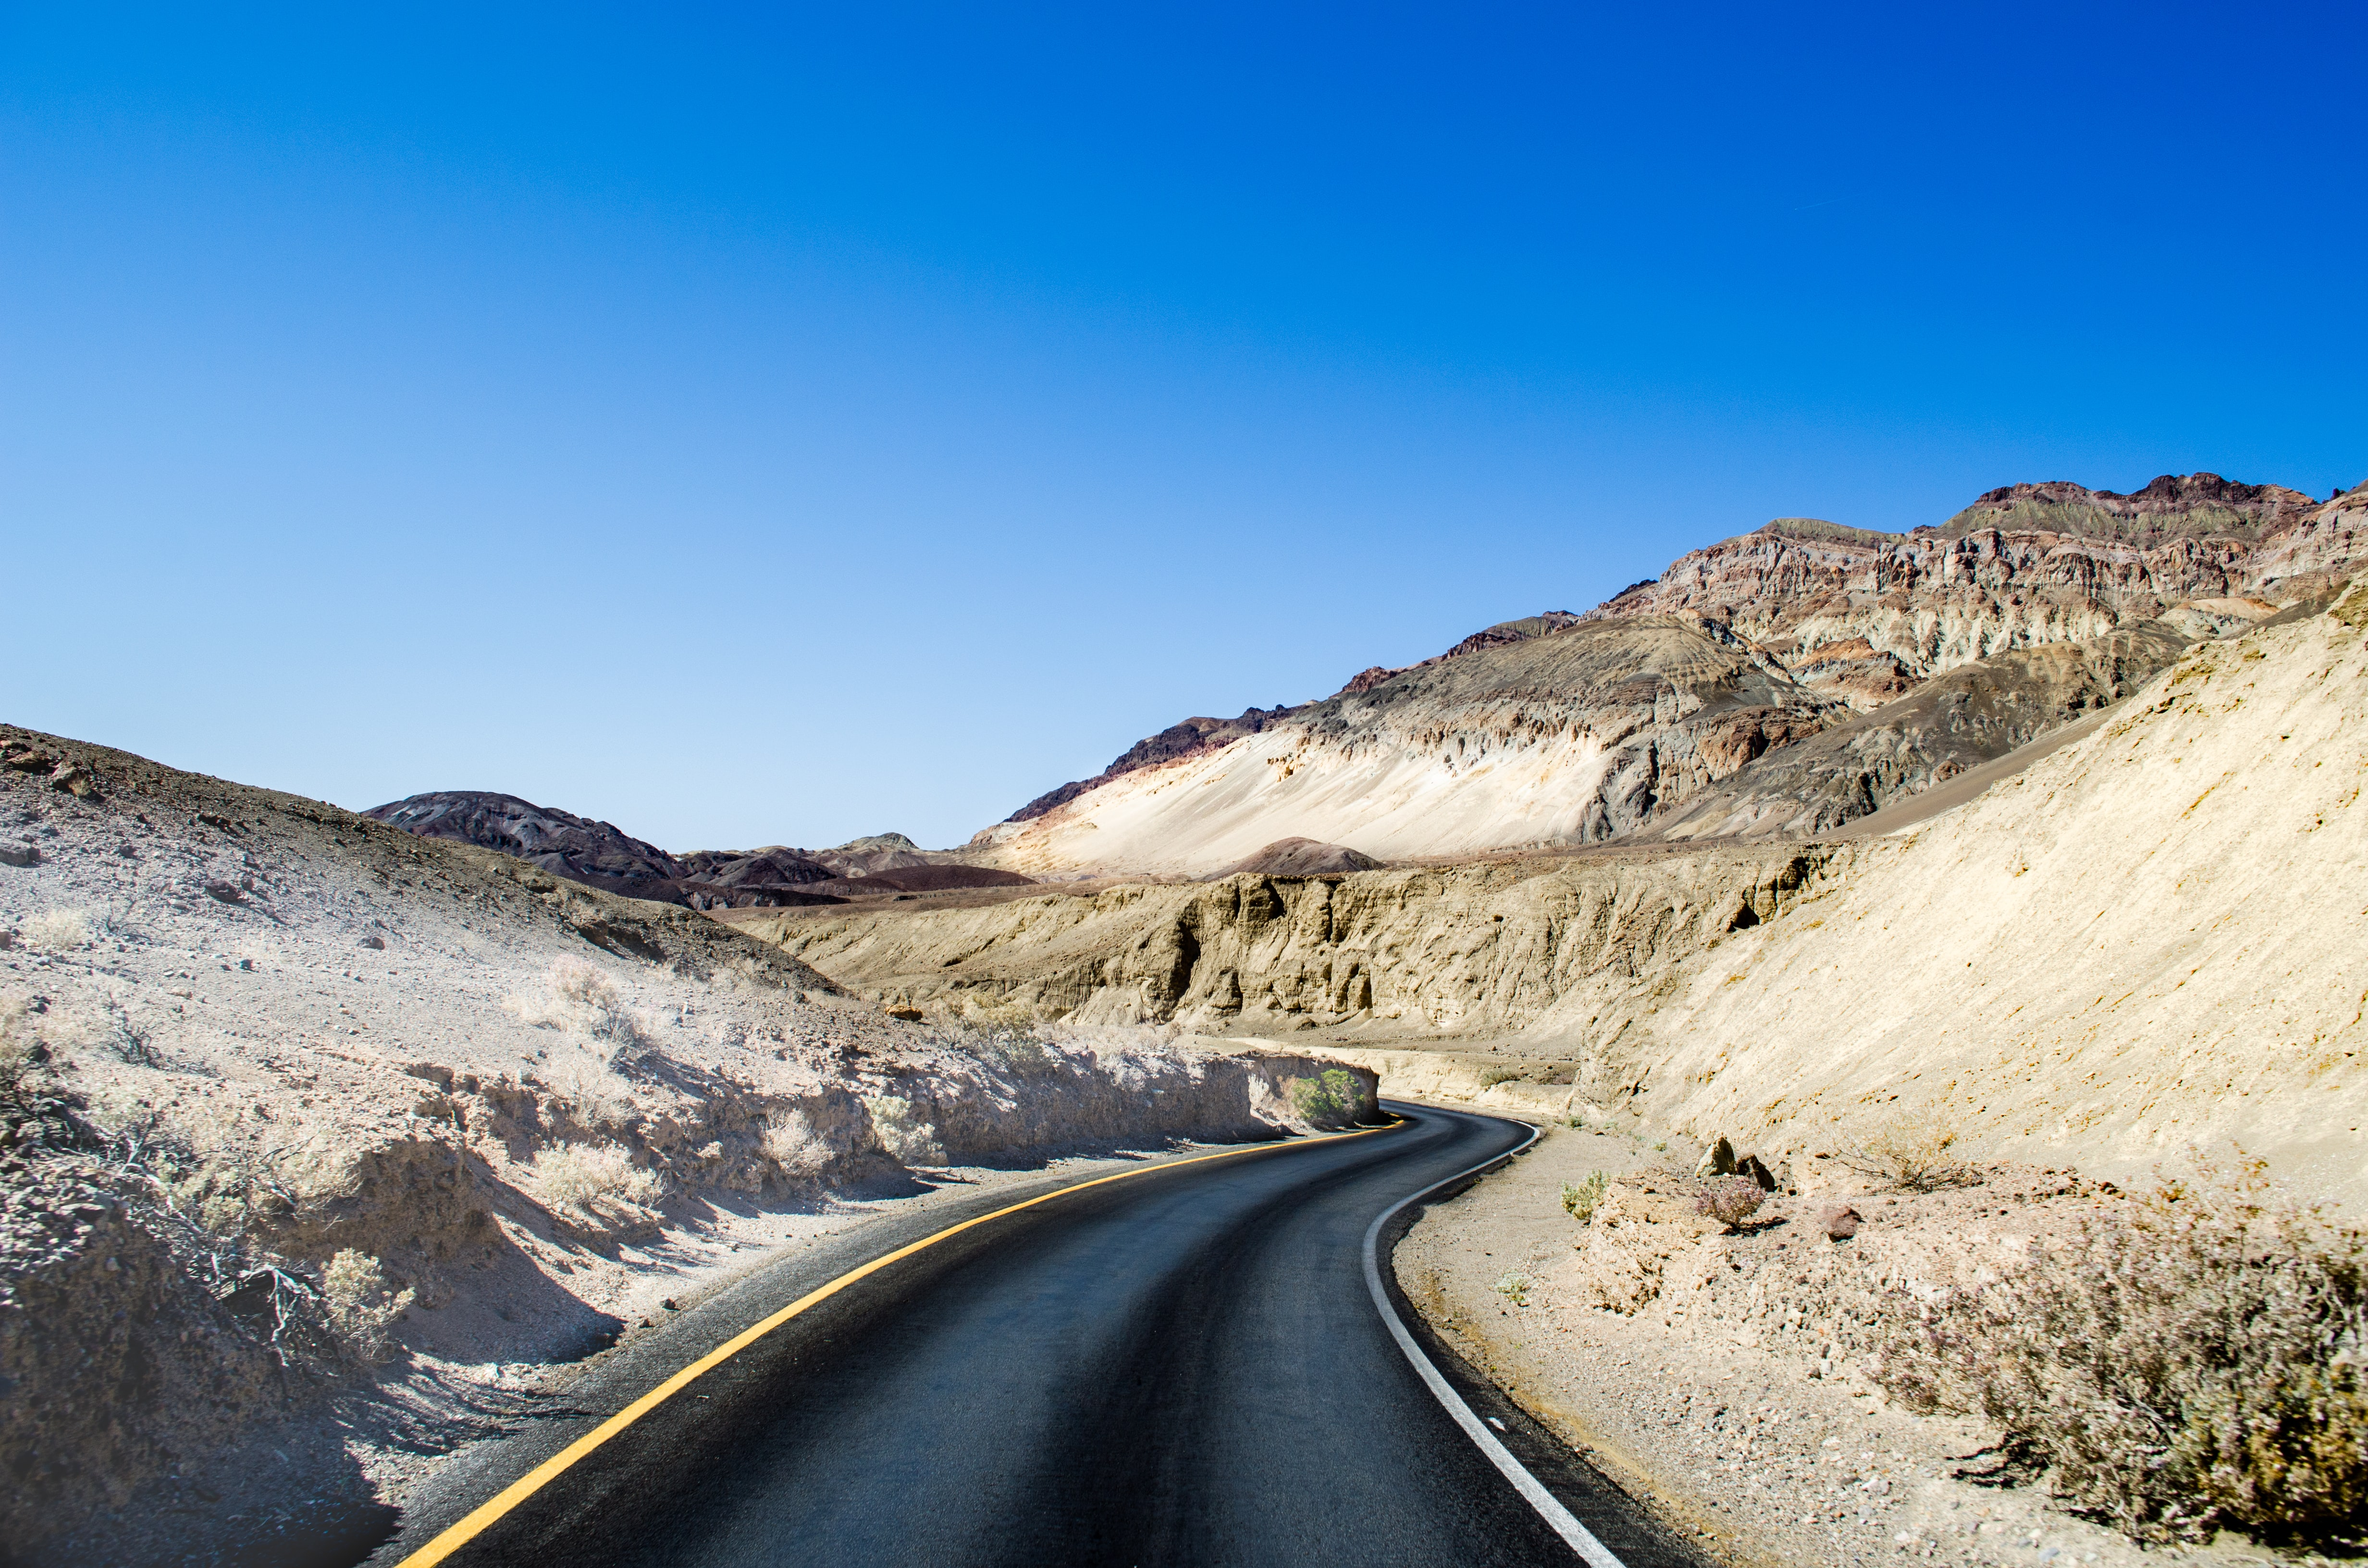 empty roadway between mountains under blue sky at daytime